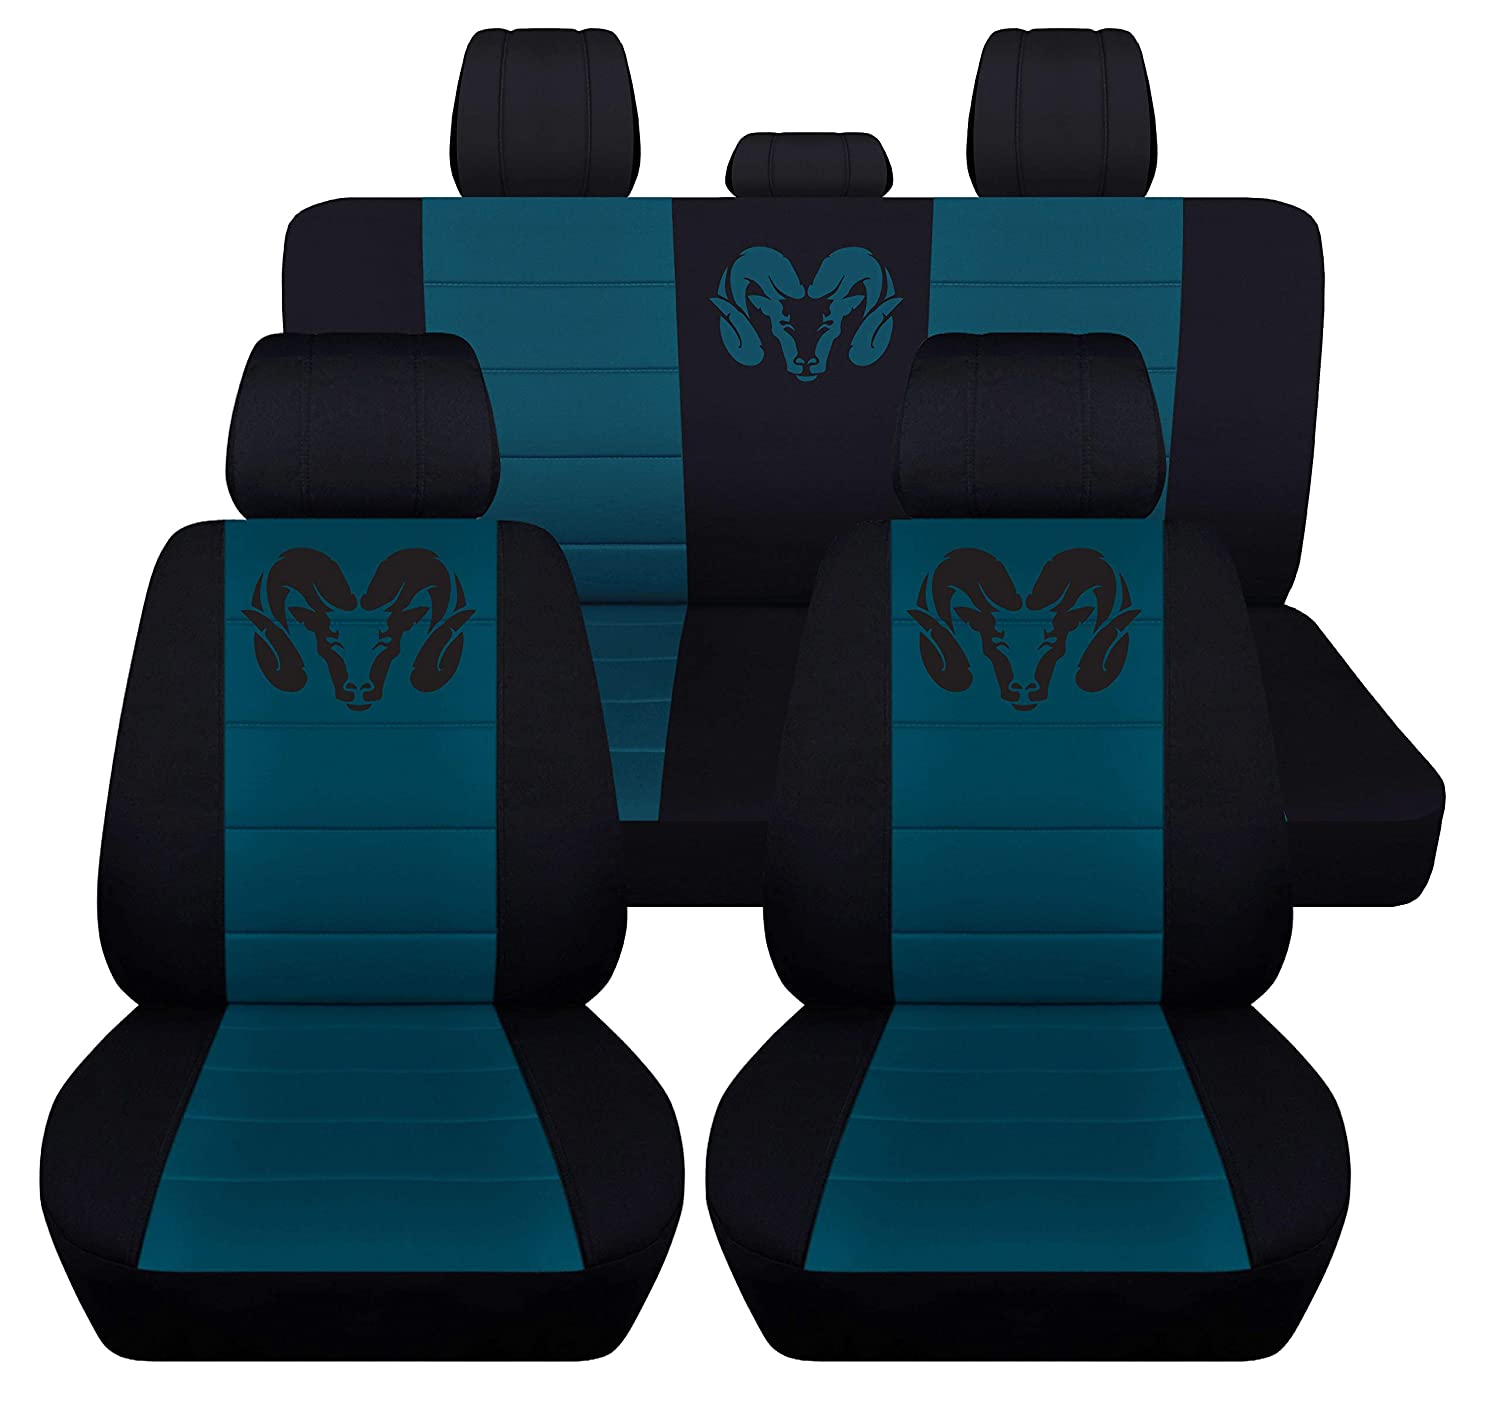 Solid Rear Bench, Black Red Fits 2012 to 2018 Dodge Ram Front and Rear Ram Seat Covers 22 Color Options